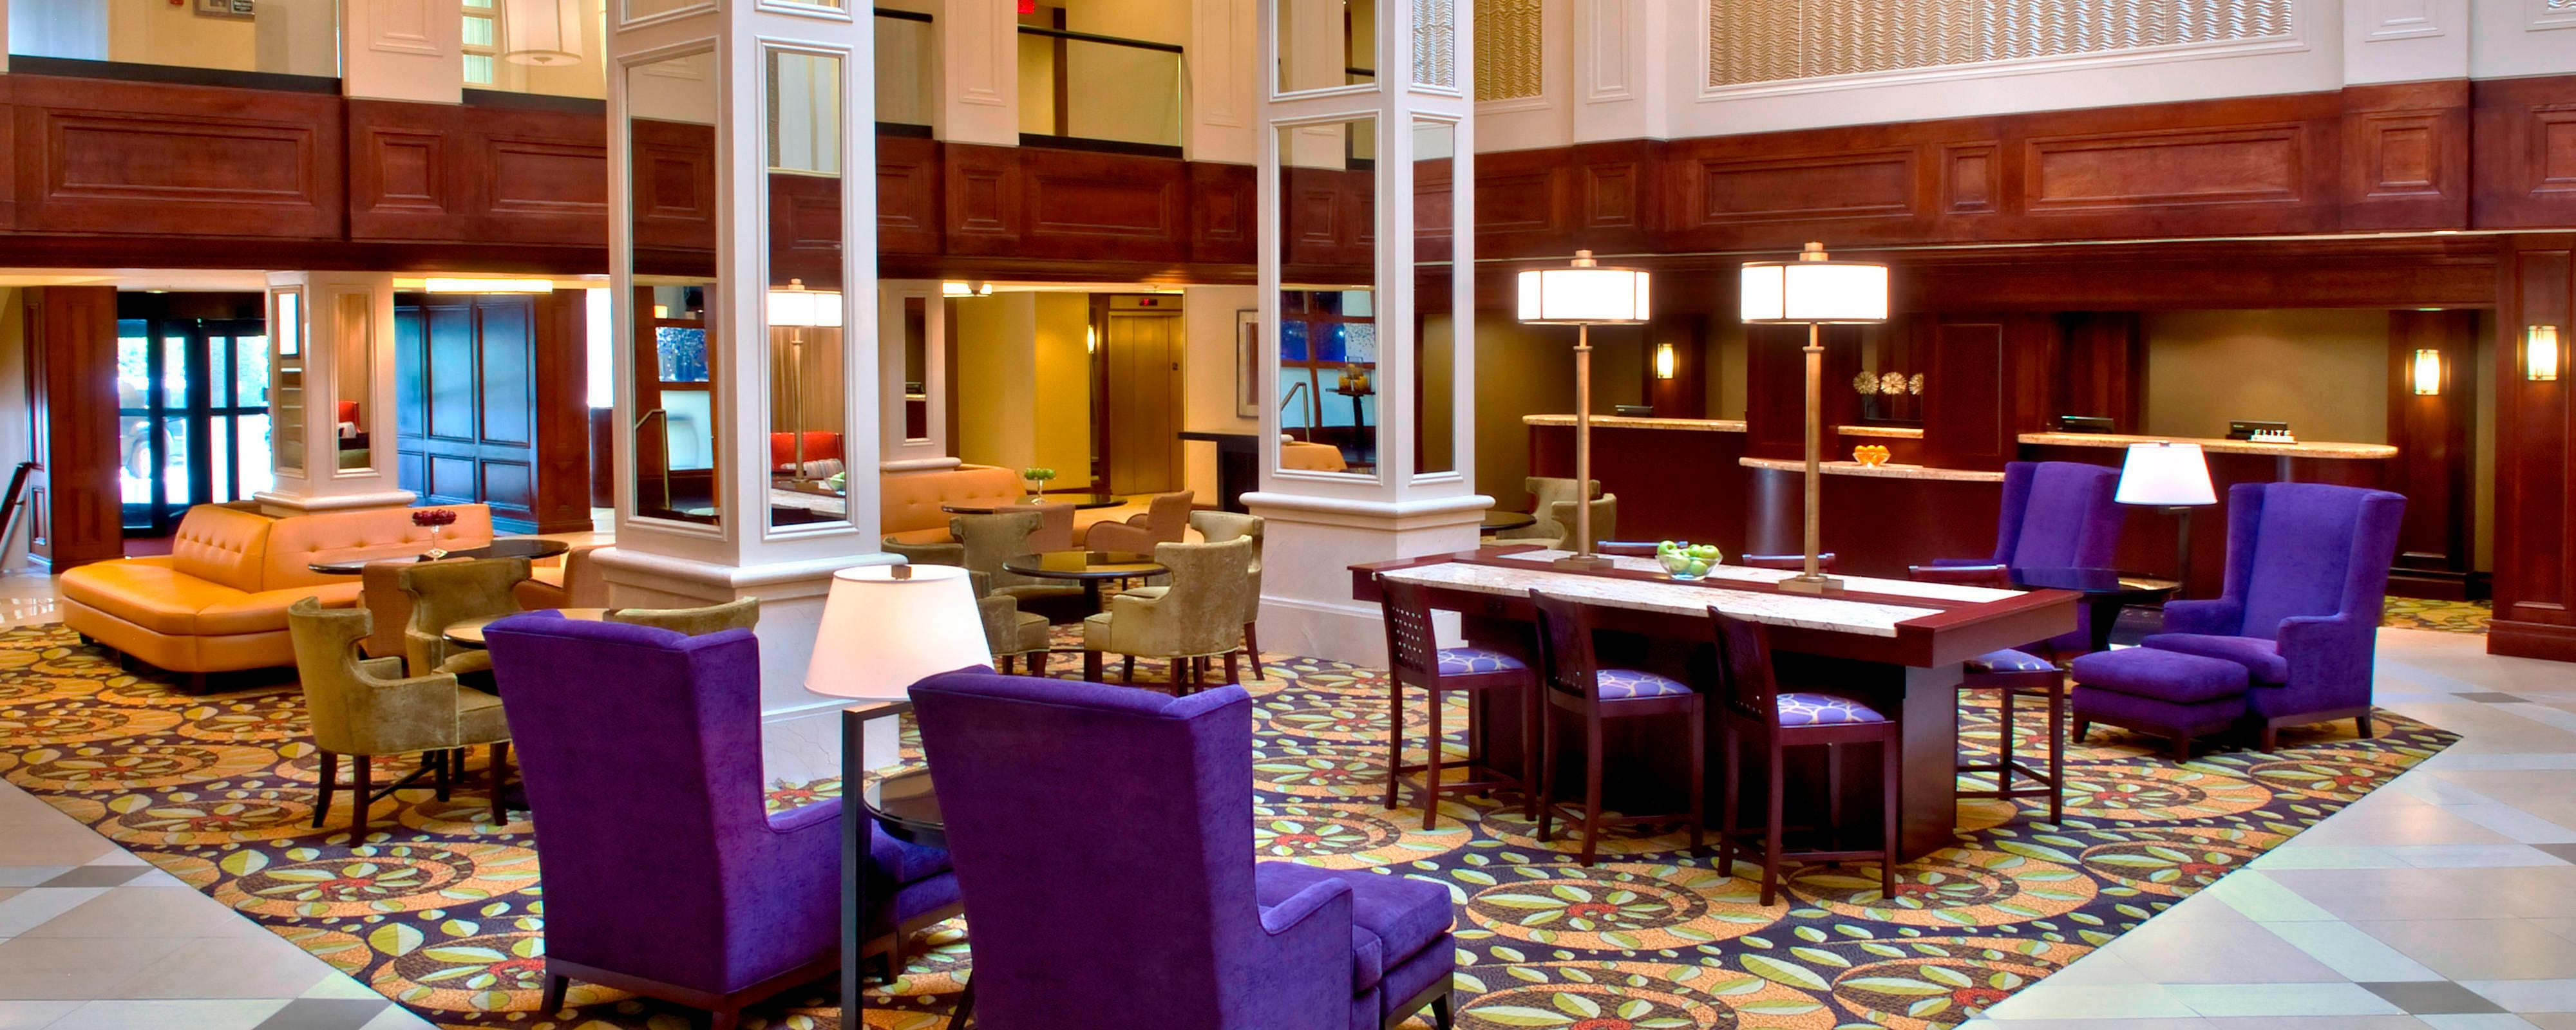 hotels in Downtown Stamford Ct